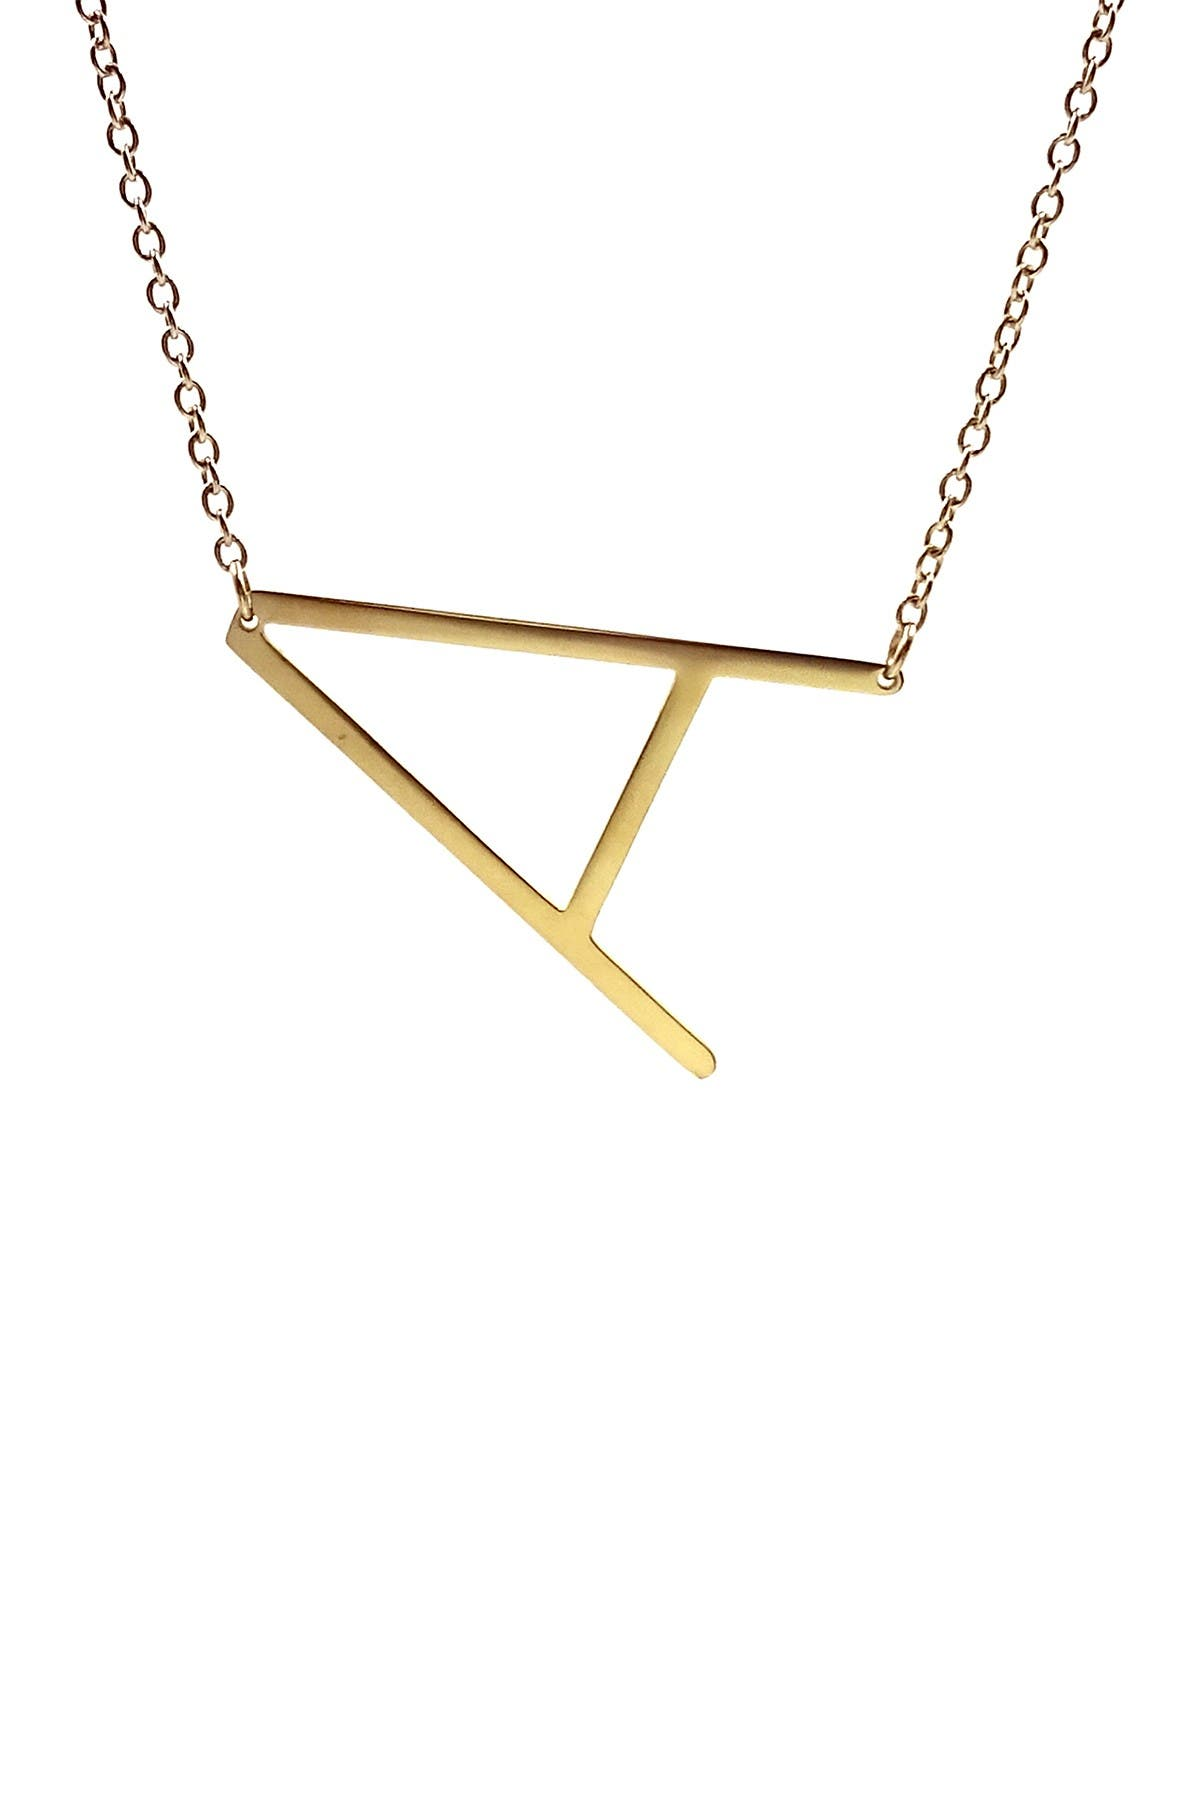 Image of Savvy Cie 14K Gold Plated XL Initial Necklace - Multiple Letters Available